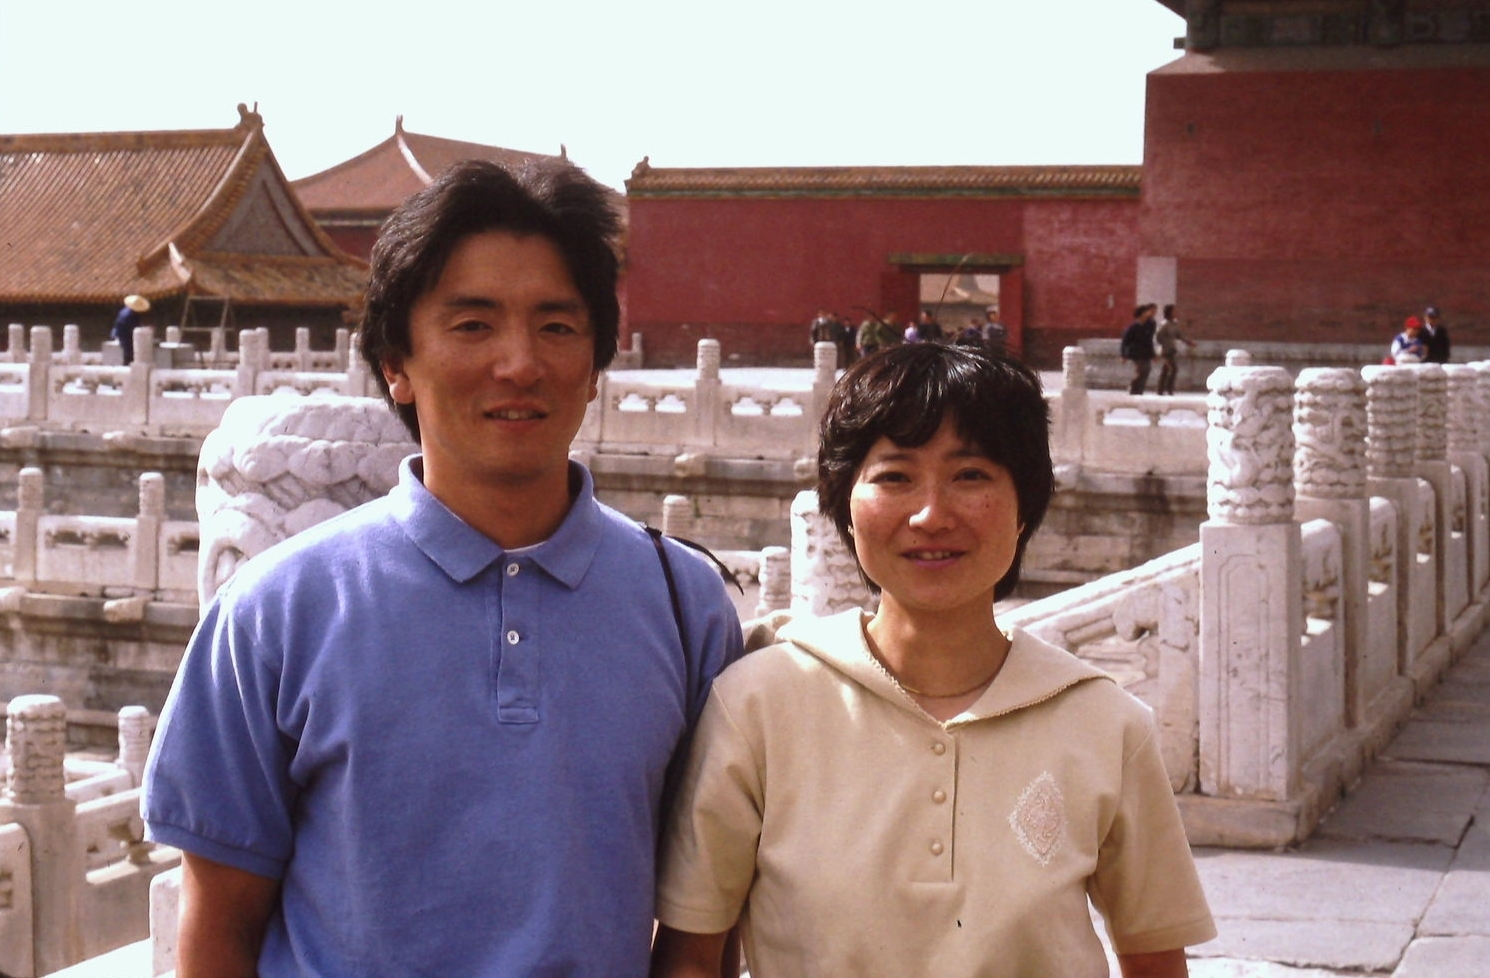 Keizo Funatsu and Yasue Okimoto in the Forbidden City, Beijing, May 1990. Photo: Cynthia Mueller